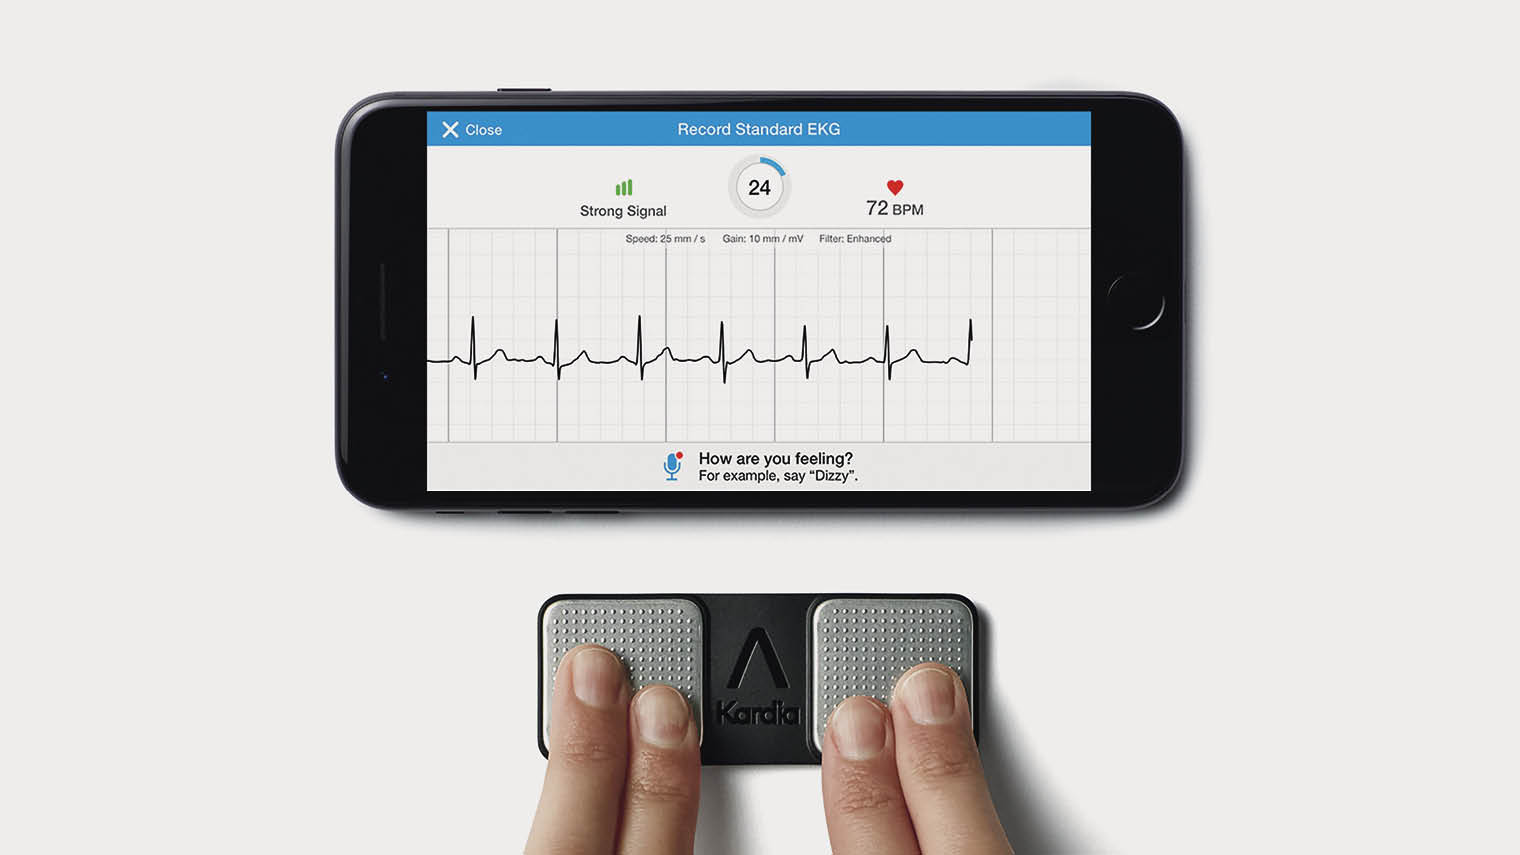 AliveCor's KardiaMobile app